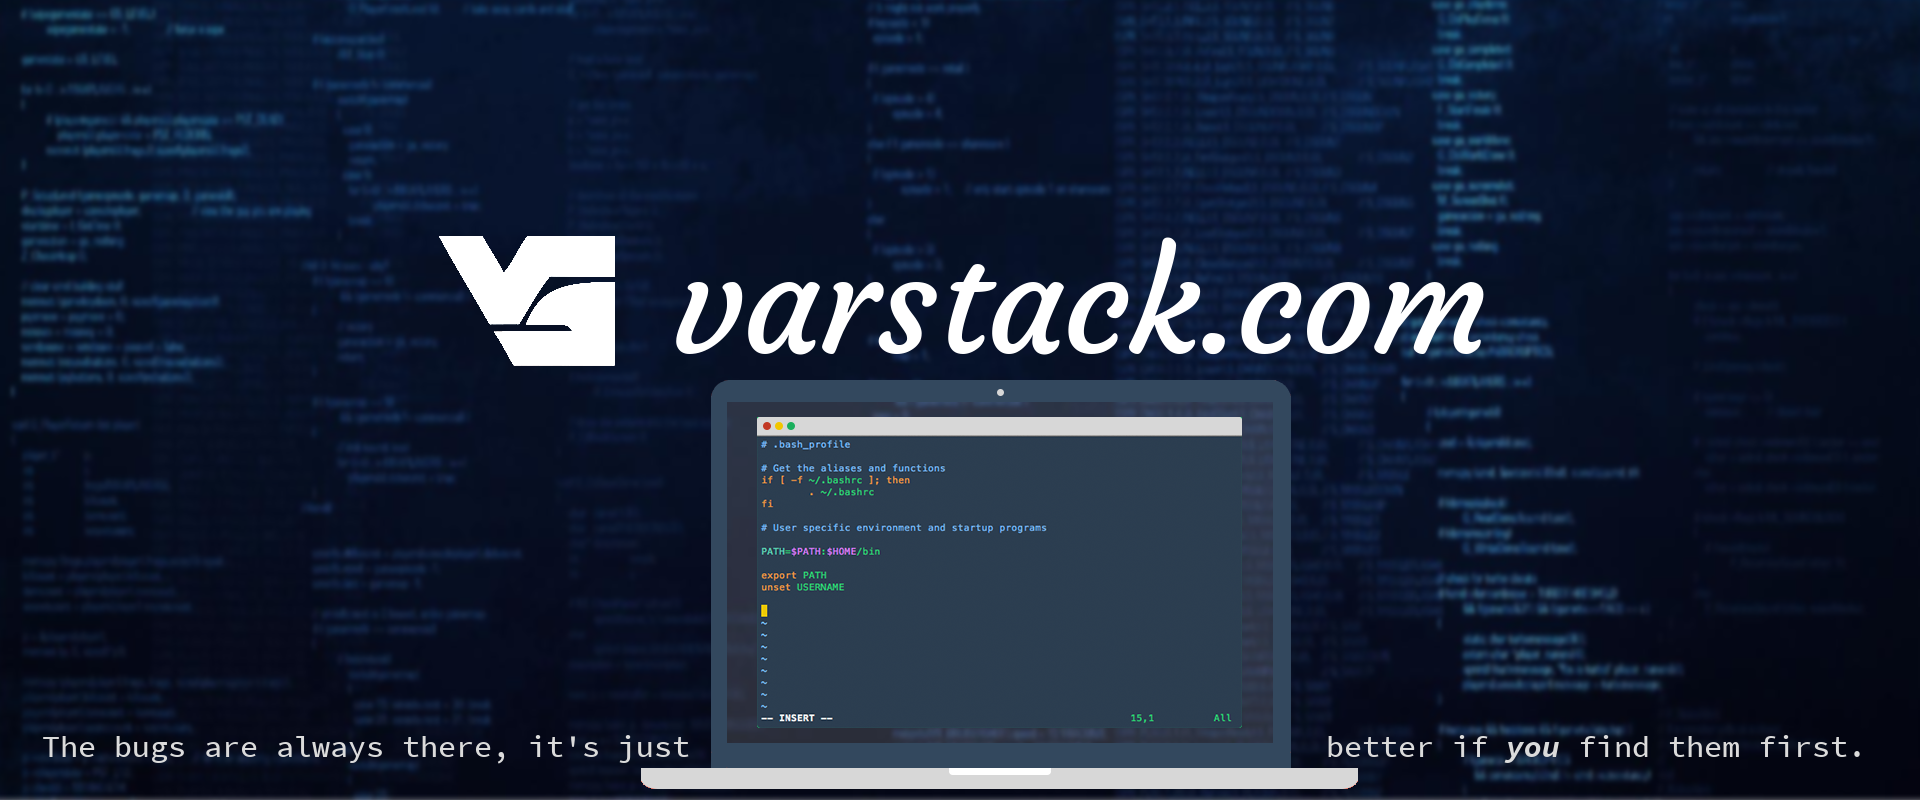 Varstack Logo - Bugs are always there